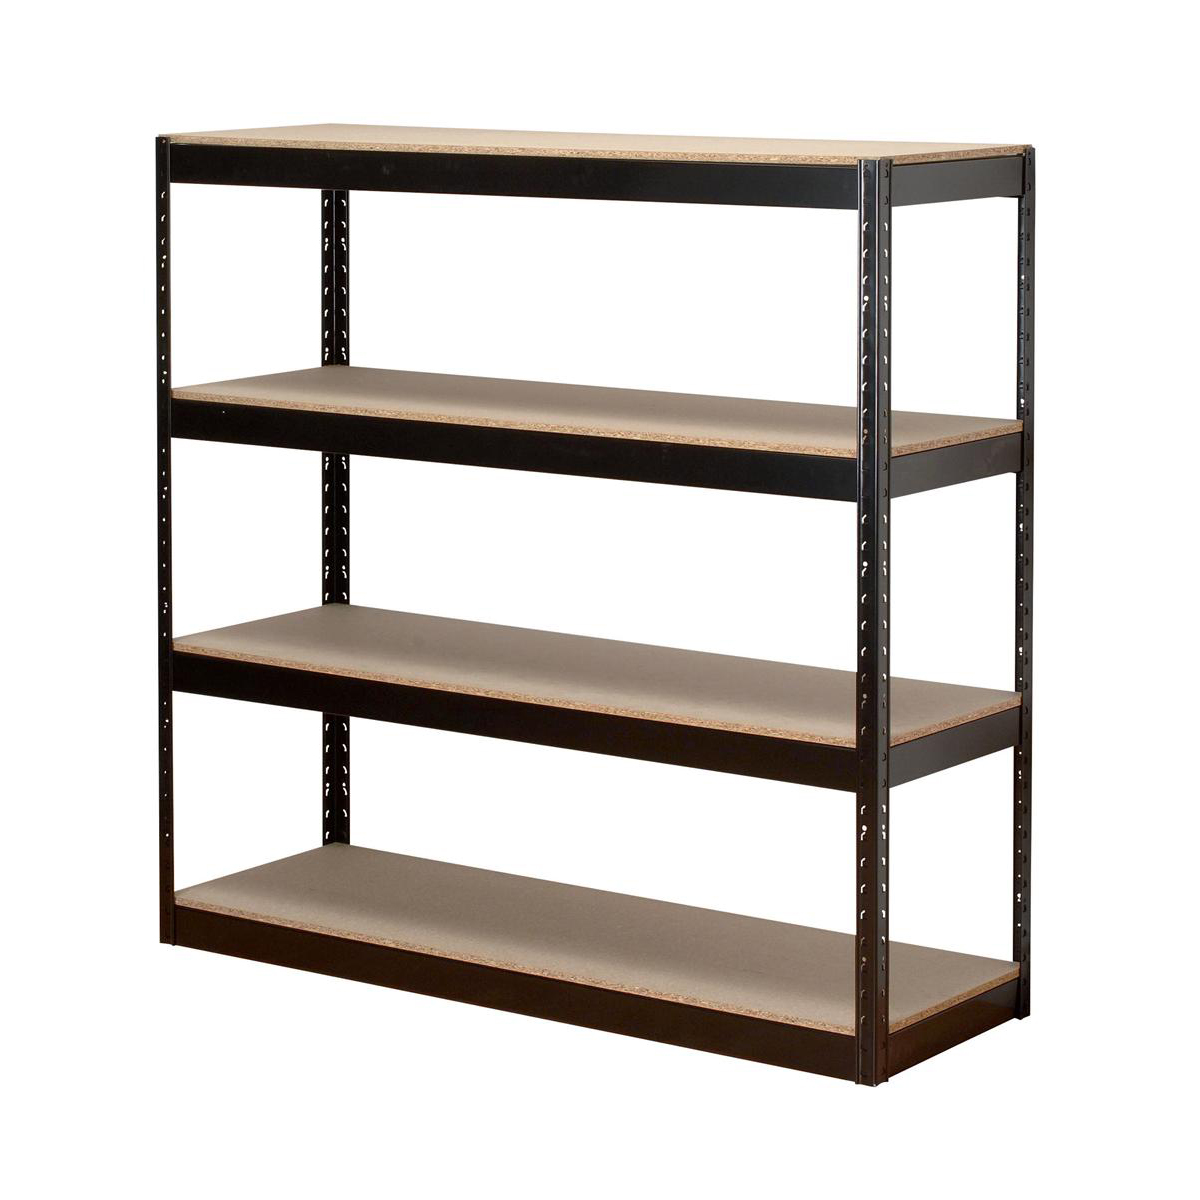 Influx Archive Shelving Unit Heavy-duty Boltless 4 Shelves Capacity 4x 100kg W1320xD450xH1315mm Black